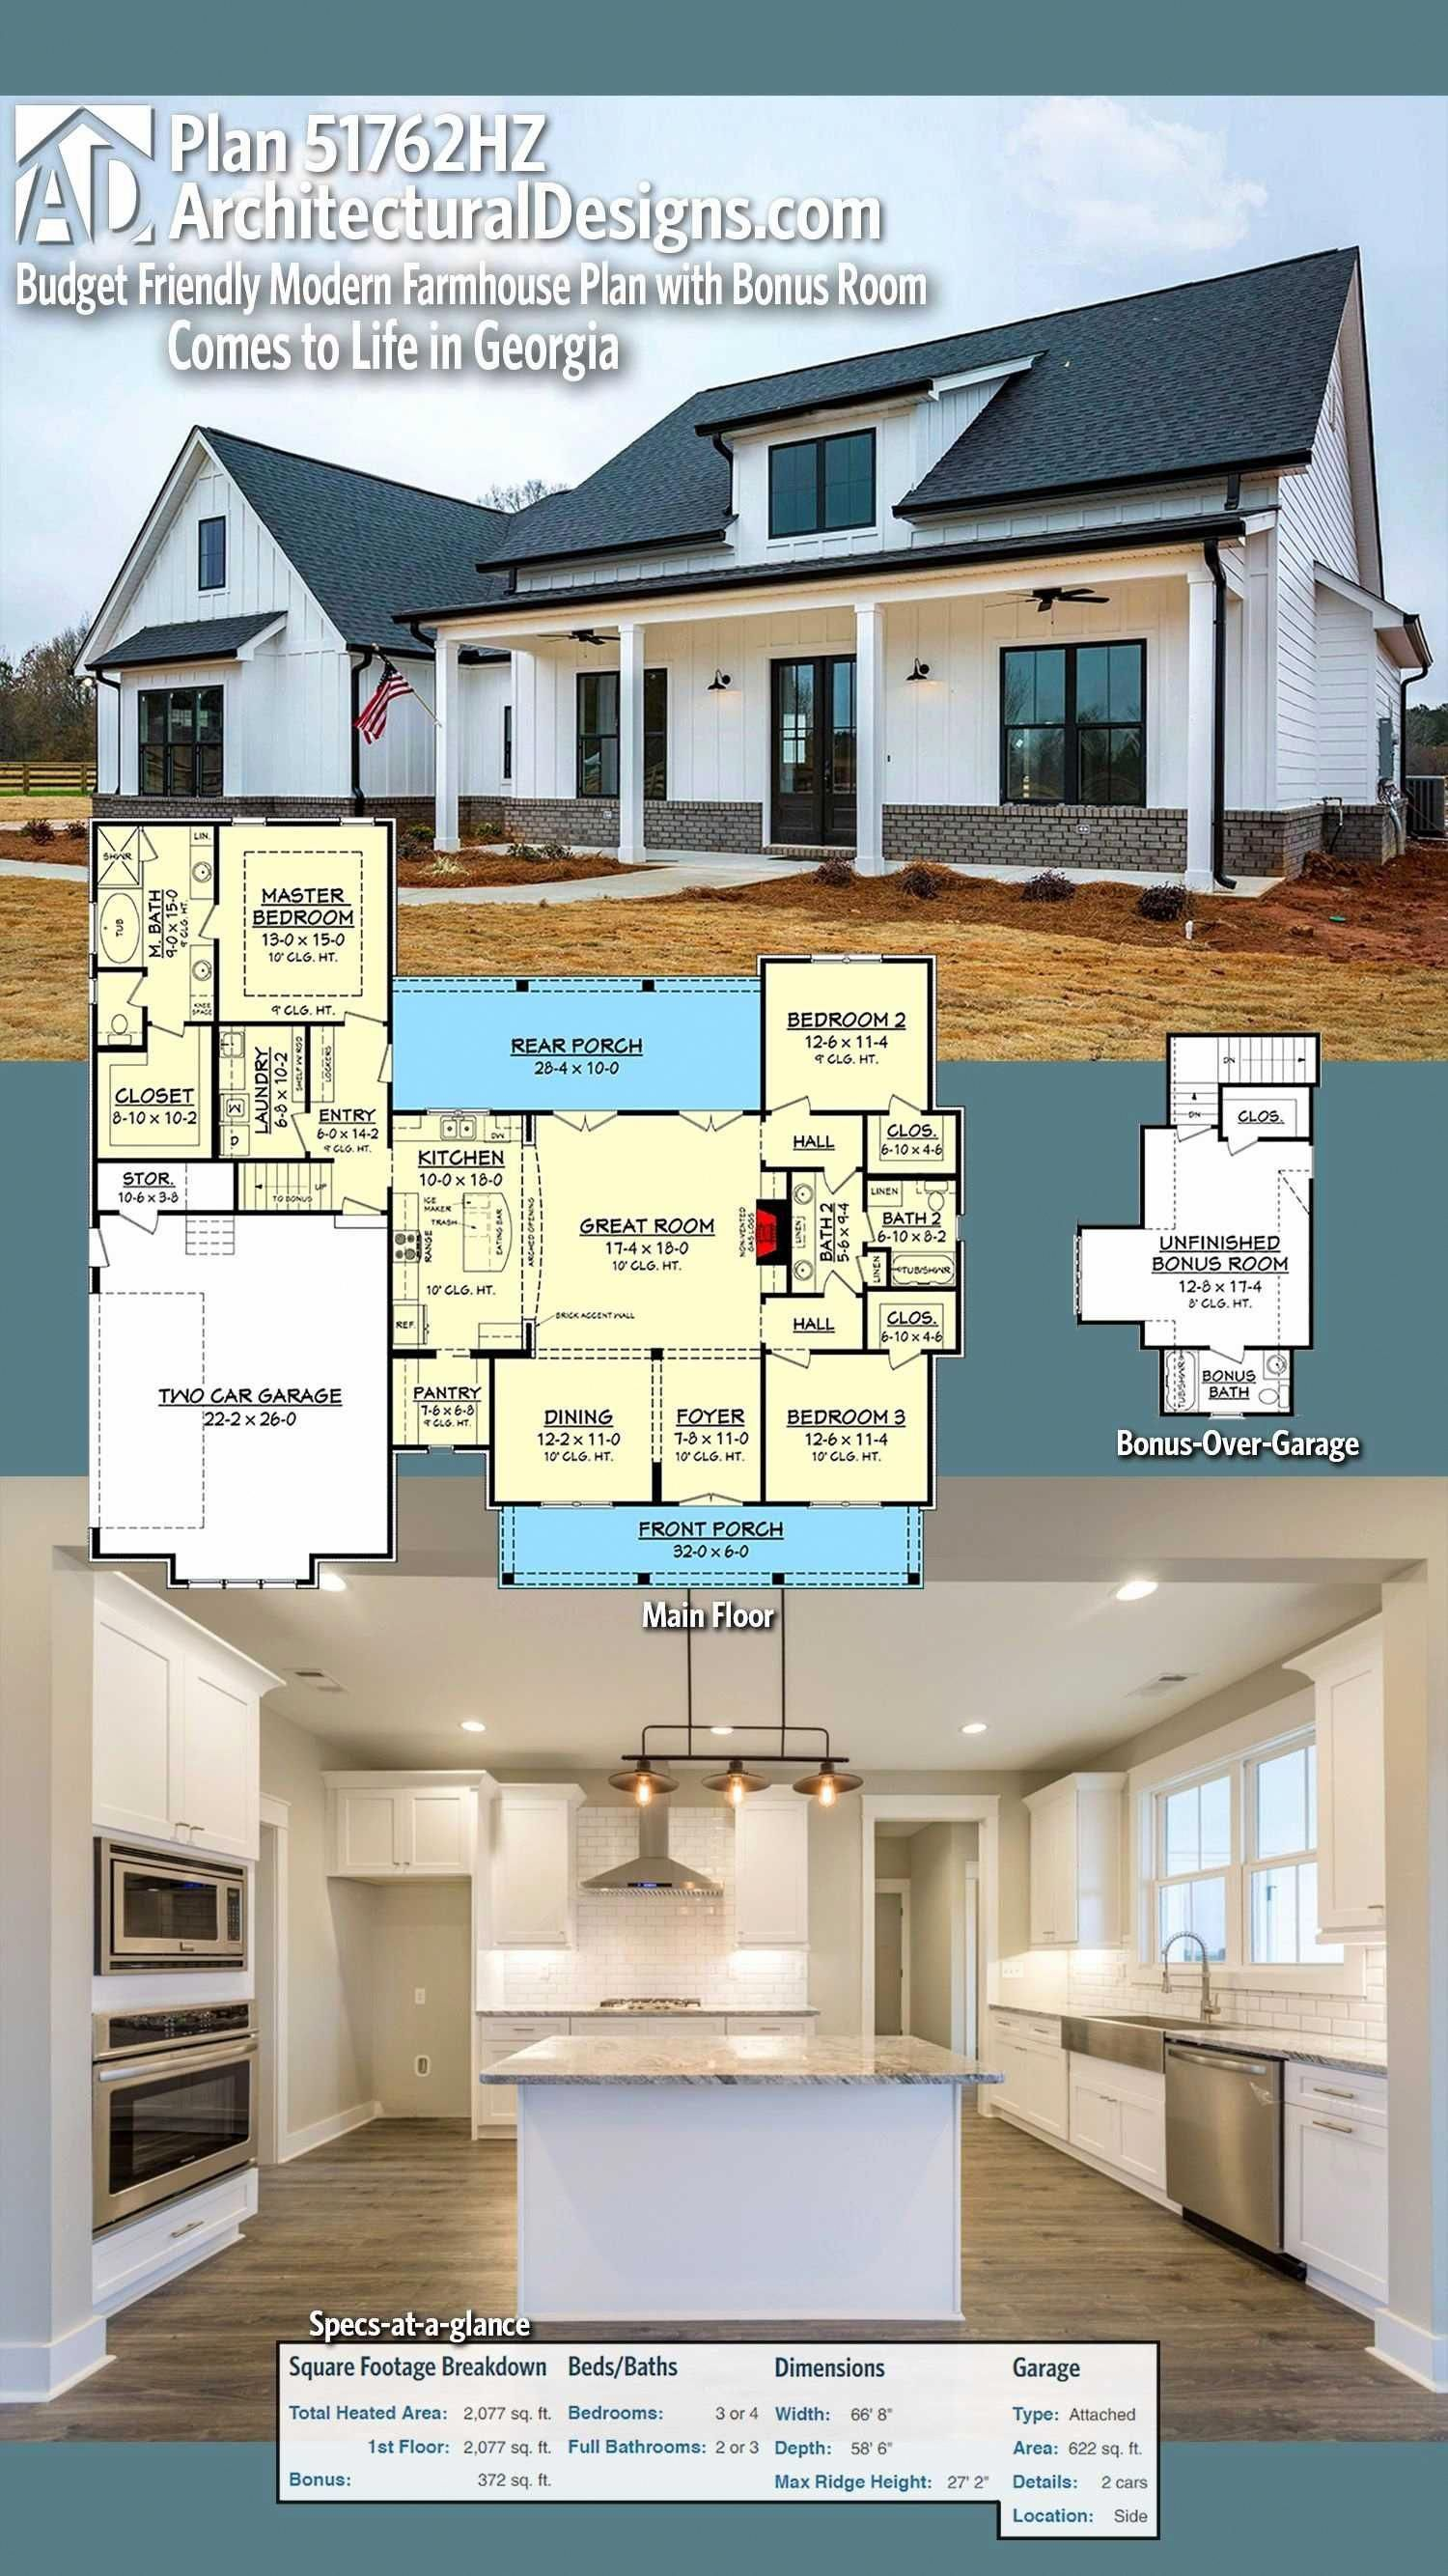 Single Story Modern Farmhouse Open Floor Plans Beautiful Modern Farm House Plans Architectural Design House Plans Modern Farmhouse Plans Farmhouse Floor Plans